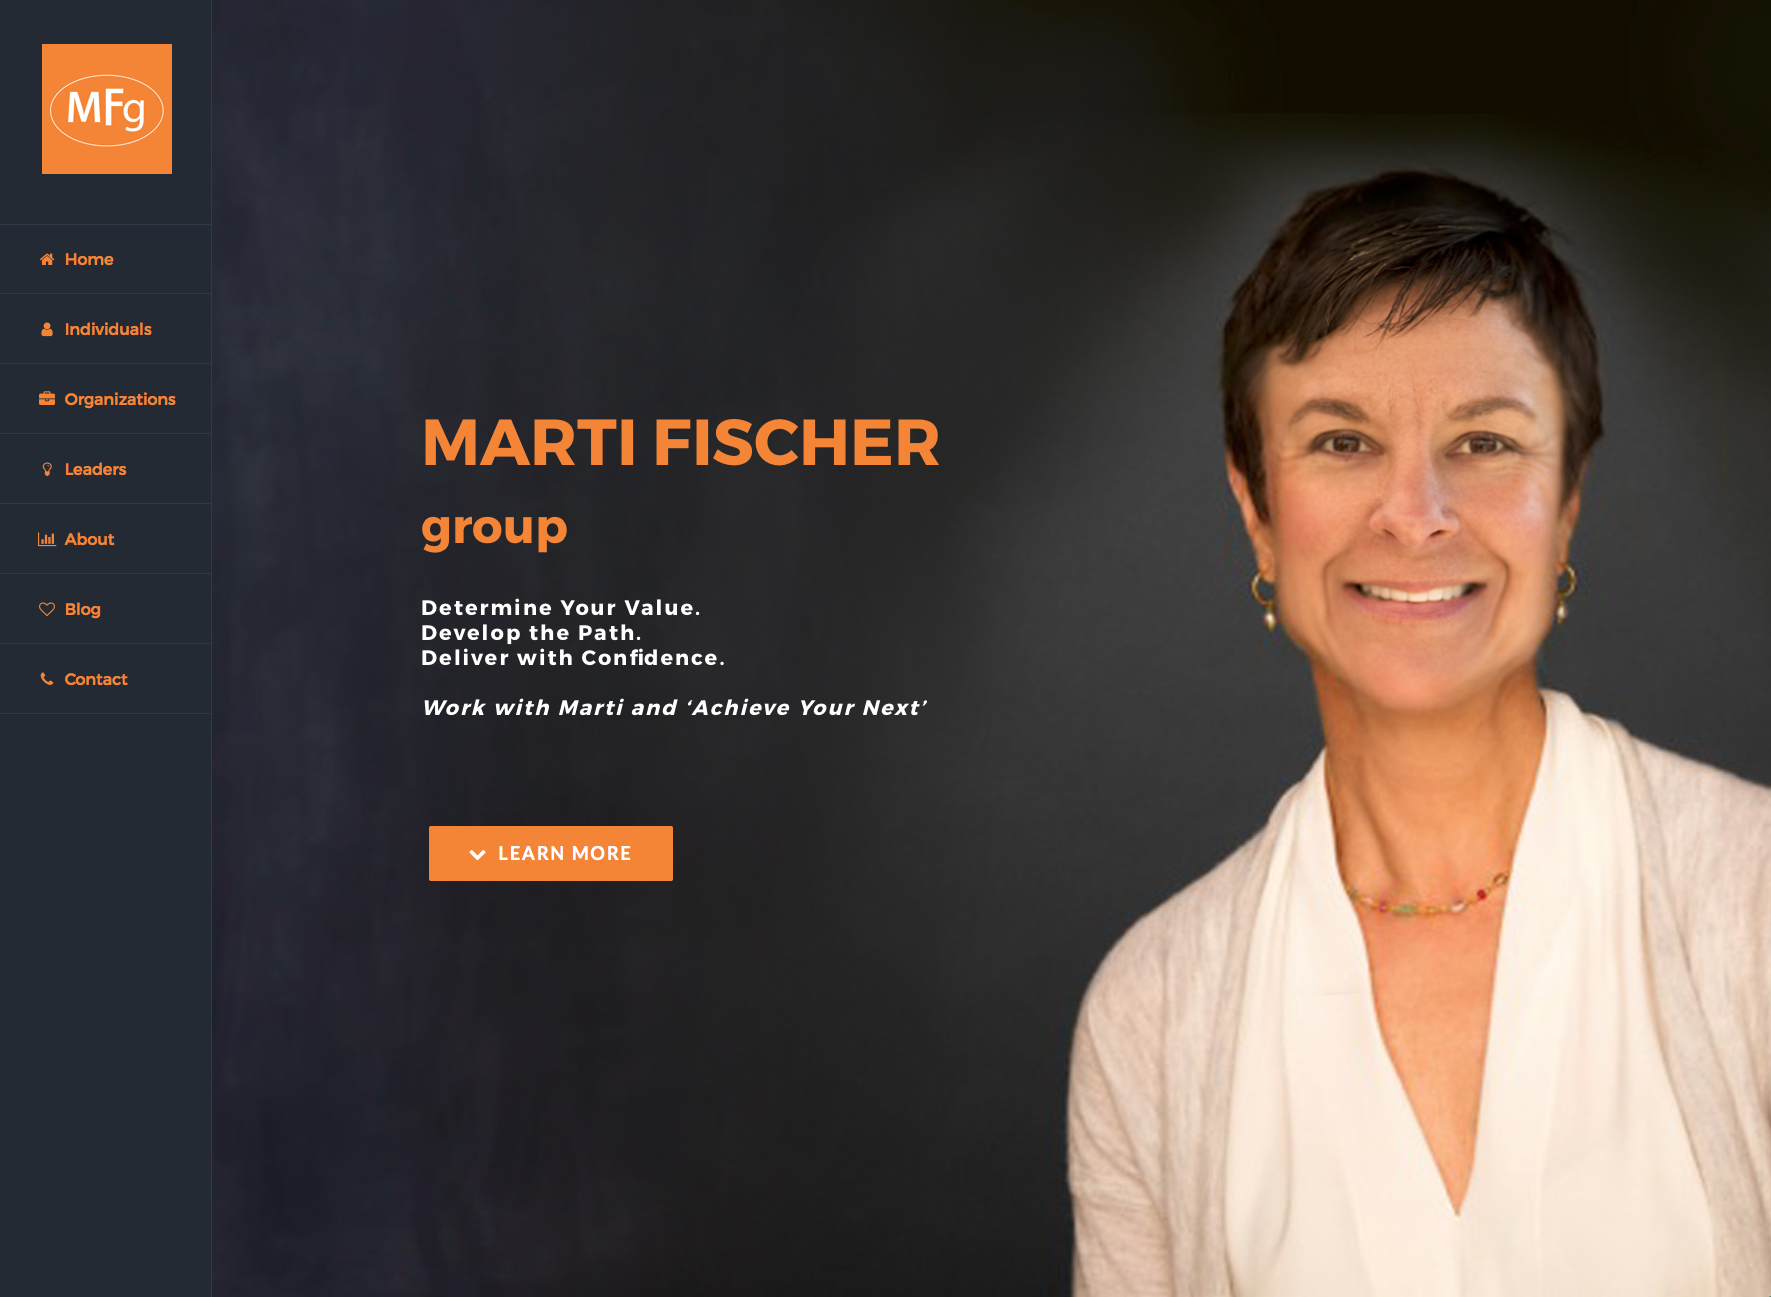 The Marti Fischer Group Corporate coachng and career development. - Click photo to visit site.